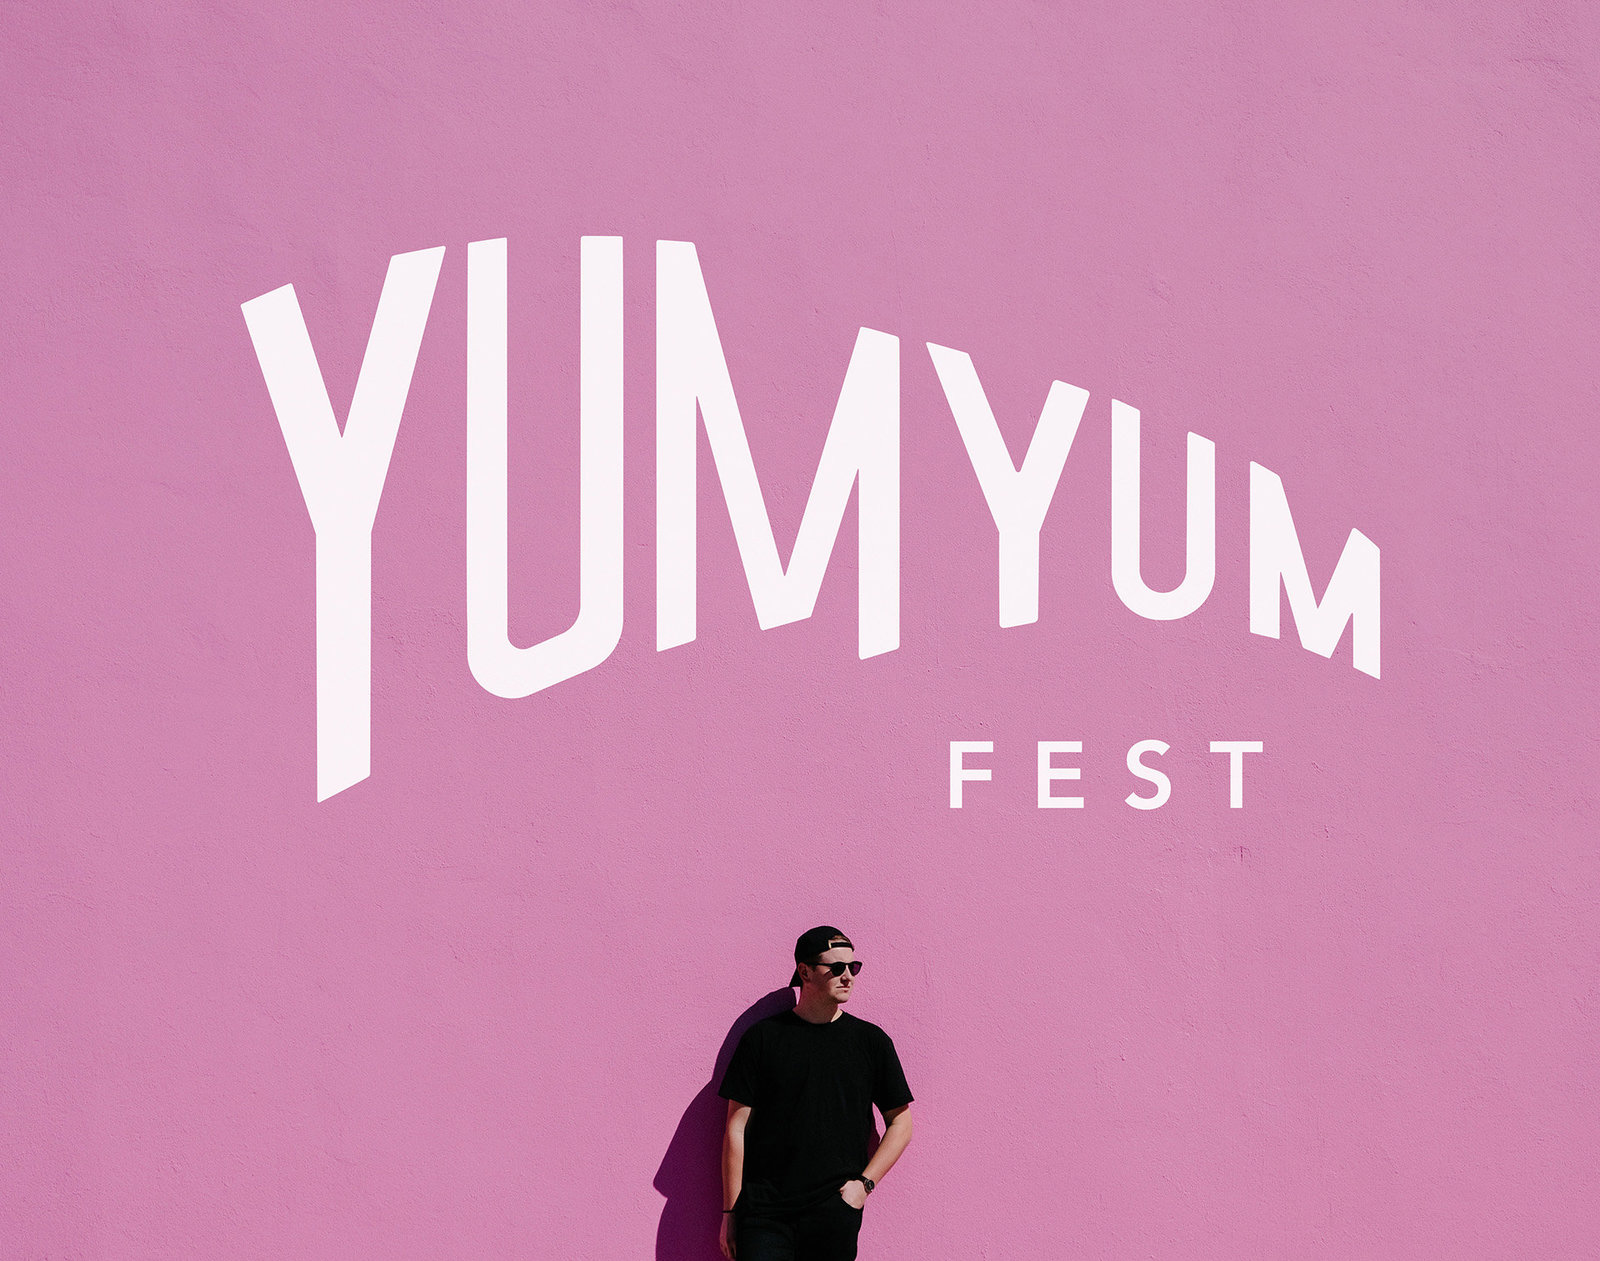 Event branding and logo design for a summer food festival, Yum Yum Fest, by Christie Evenson